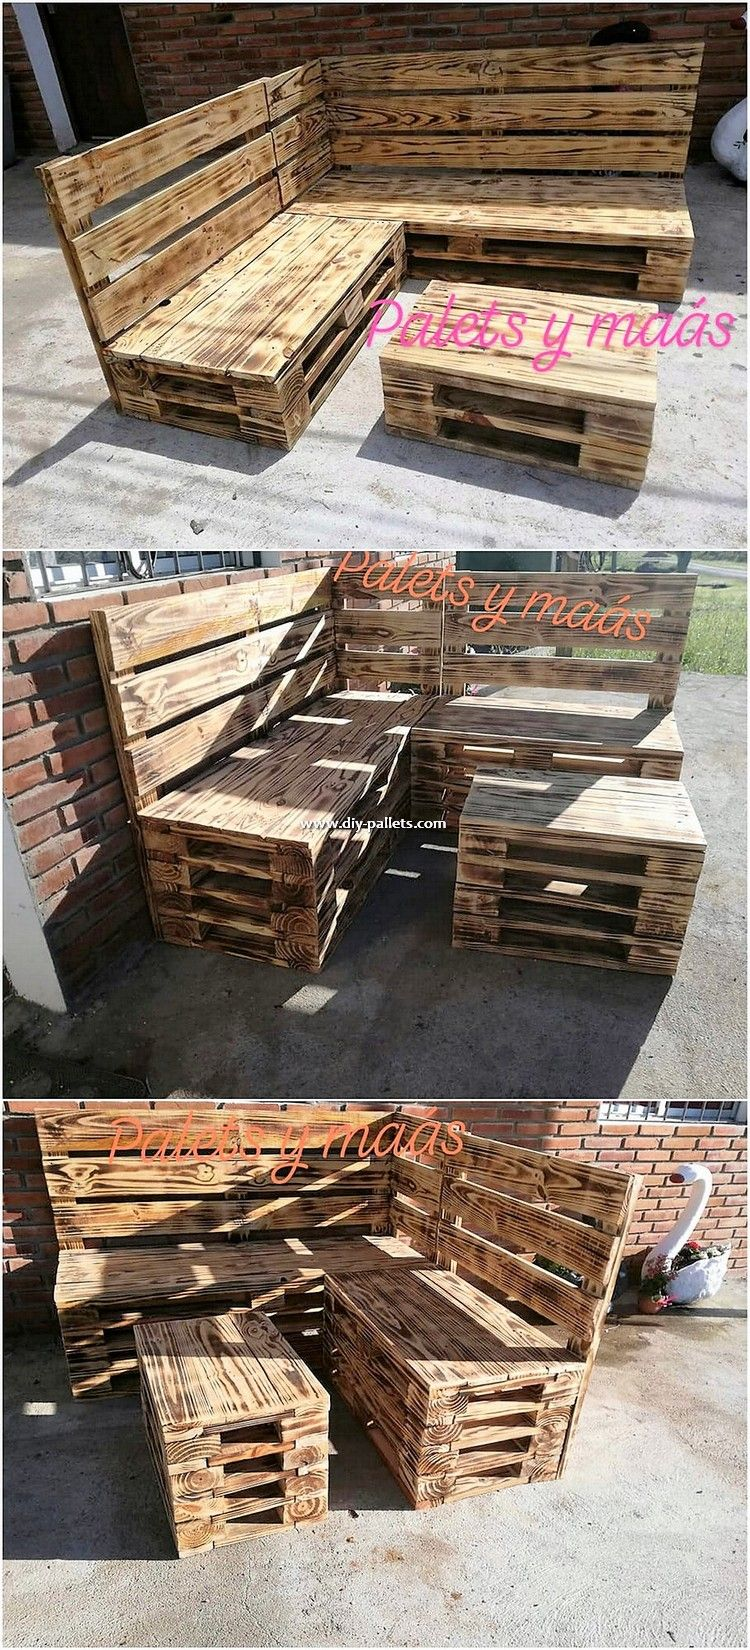 Charming Wood Pallet Ideas You Can DIY This Weekend ...